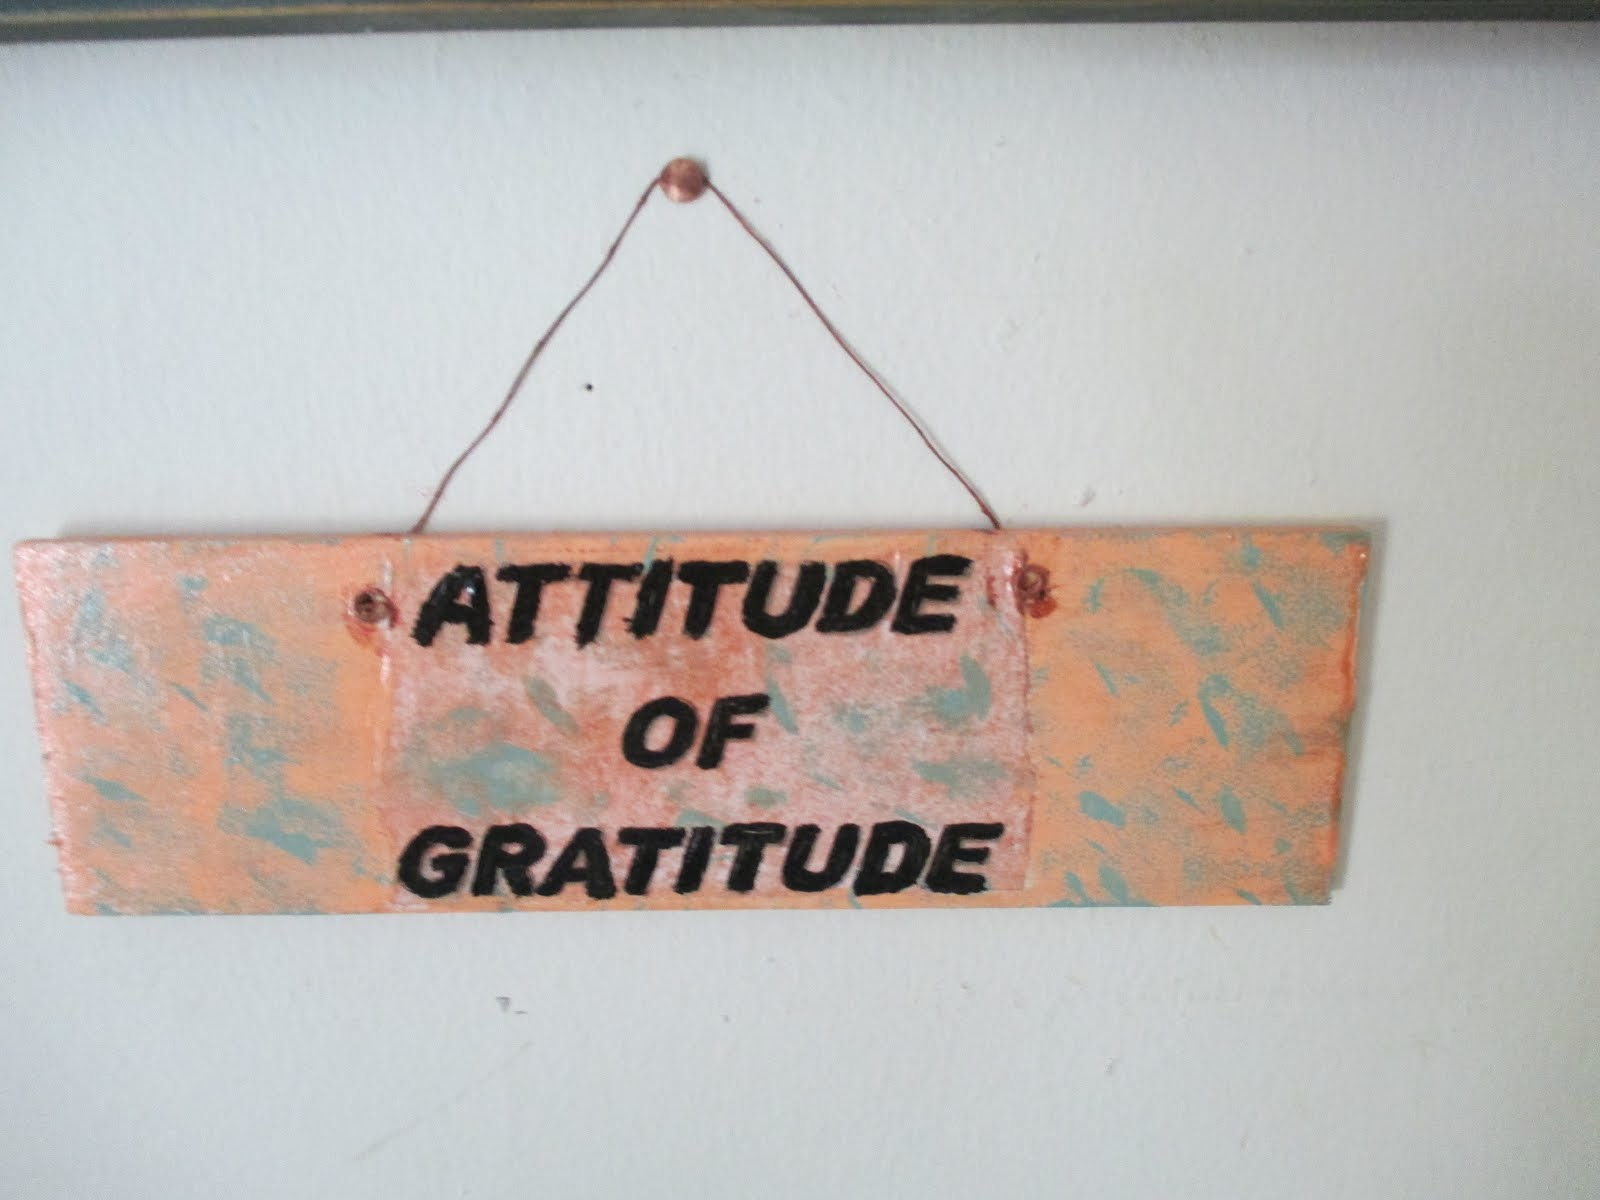 Let's have an attitude of gratitude!